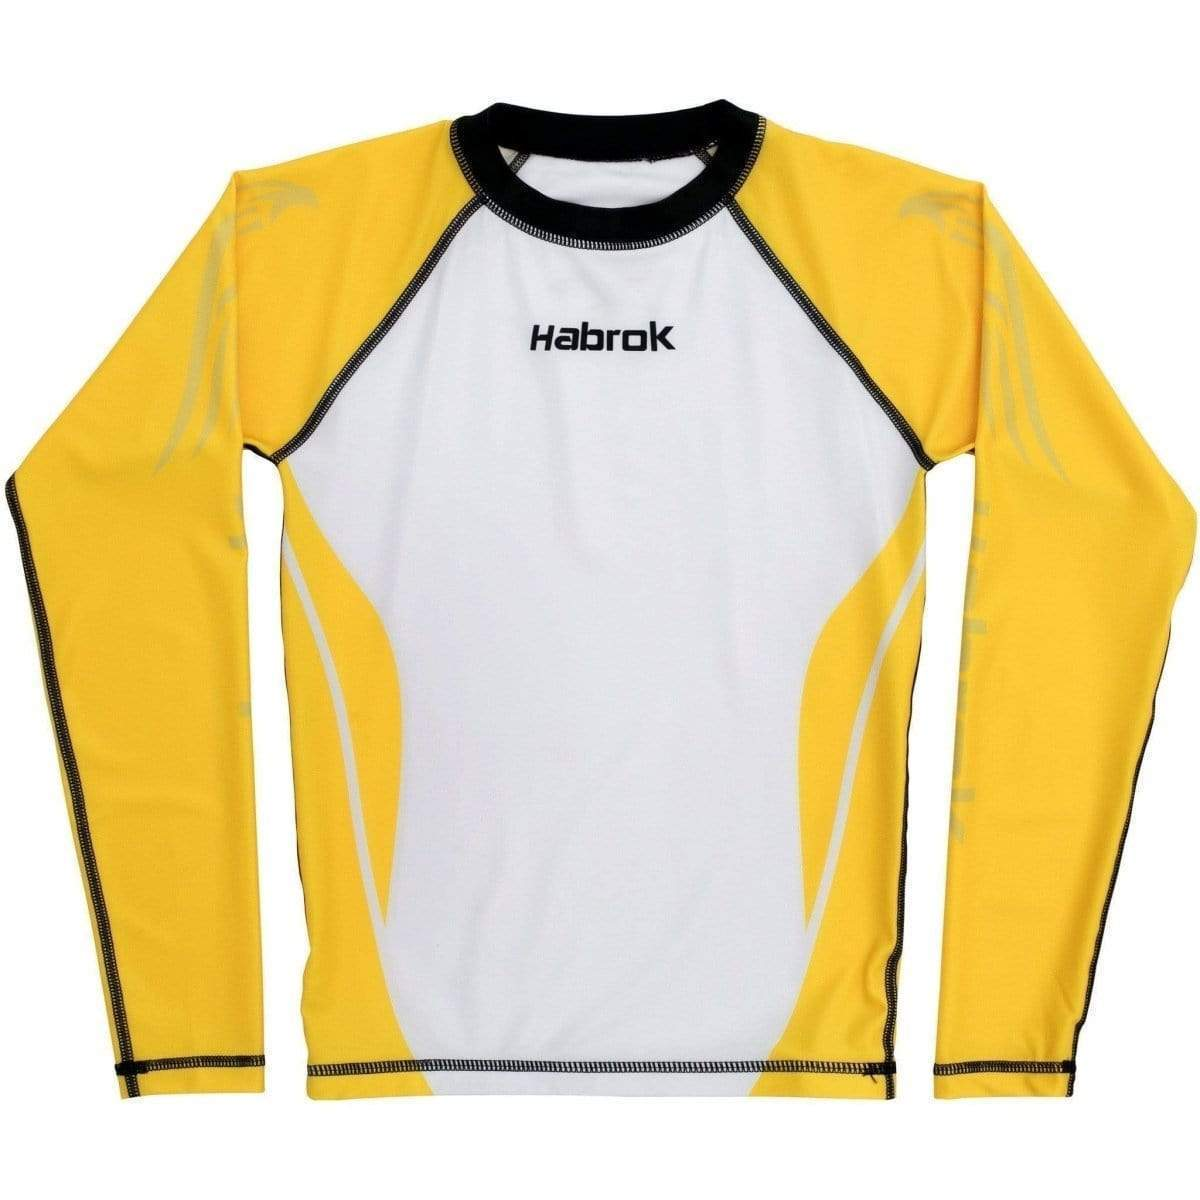 Habrok Rash Guard XS / Yellow Performance Rash Guard - Youth Habrok - Performance Rash Guard - Youth